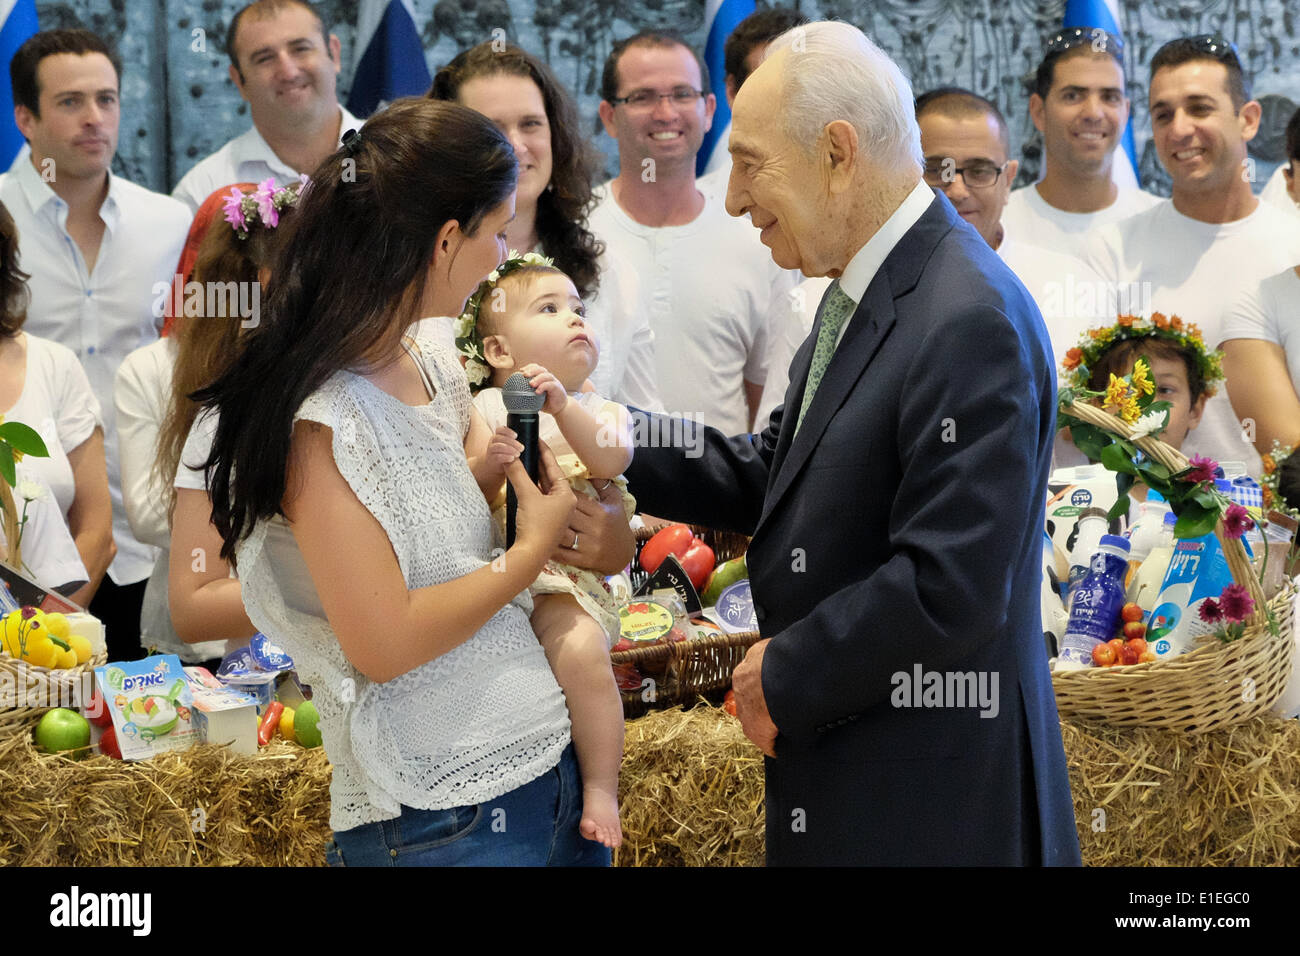 Jerusalem, Israel. 02nd June, 2014. Israeli President SHIMON PERES is presented with a newborn infant in the custom of the kibbutz. The President hosted a Bikkurim Festival for the Shavuot holiday, celebrating the giving of the Torah at Mt. Sinai. Also referred to as the Harvest Festival, in ancient times Jewish farmers brought their first fruits of the season to the Temple in Jerusalem as offerings. Credit:  Nir Alon/Alamy Live News - Stock Image